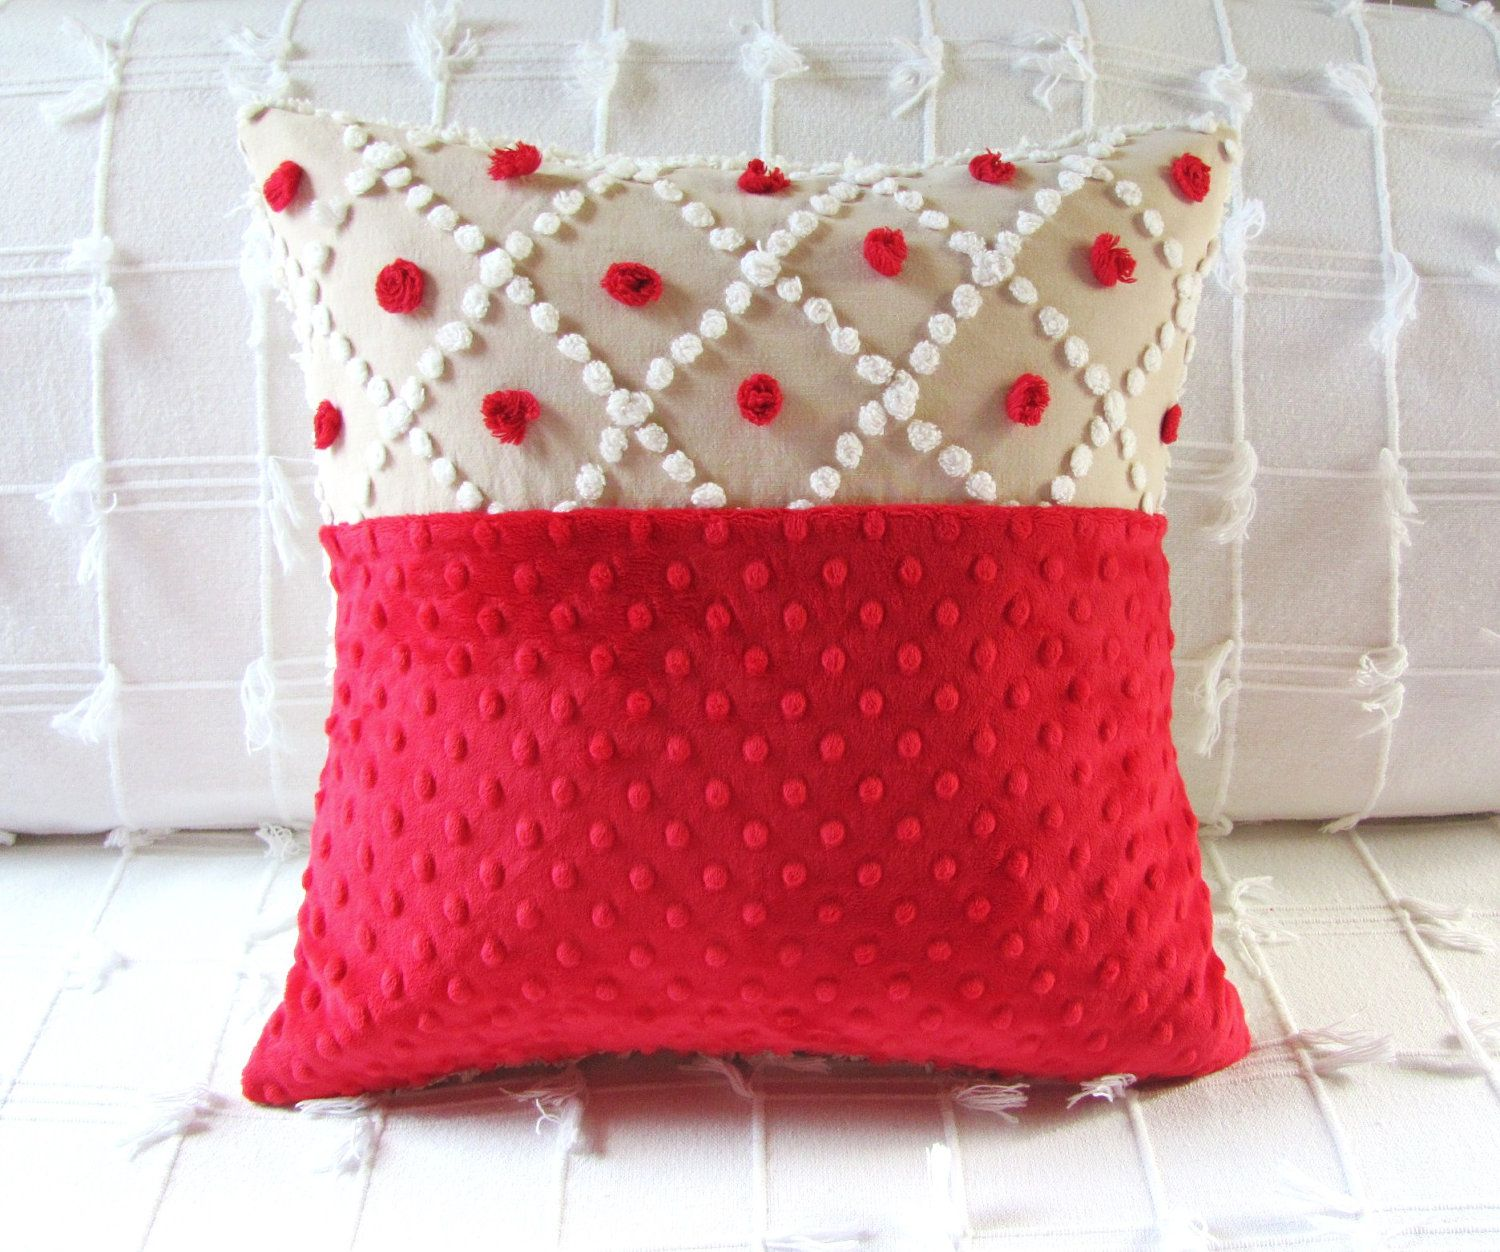 Throw Pillow Decorating Ideas : Christmas Decorating Ideas: 10 Pretty Holiday Pillows Pillows, Christmas pillow and Holidays